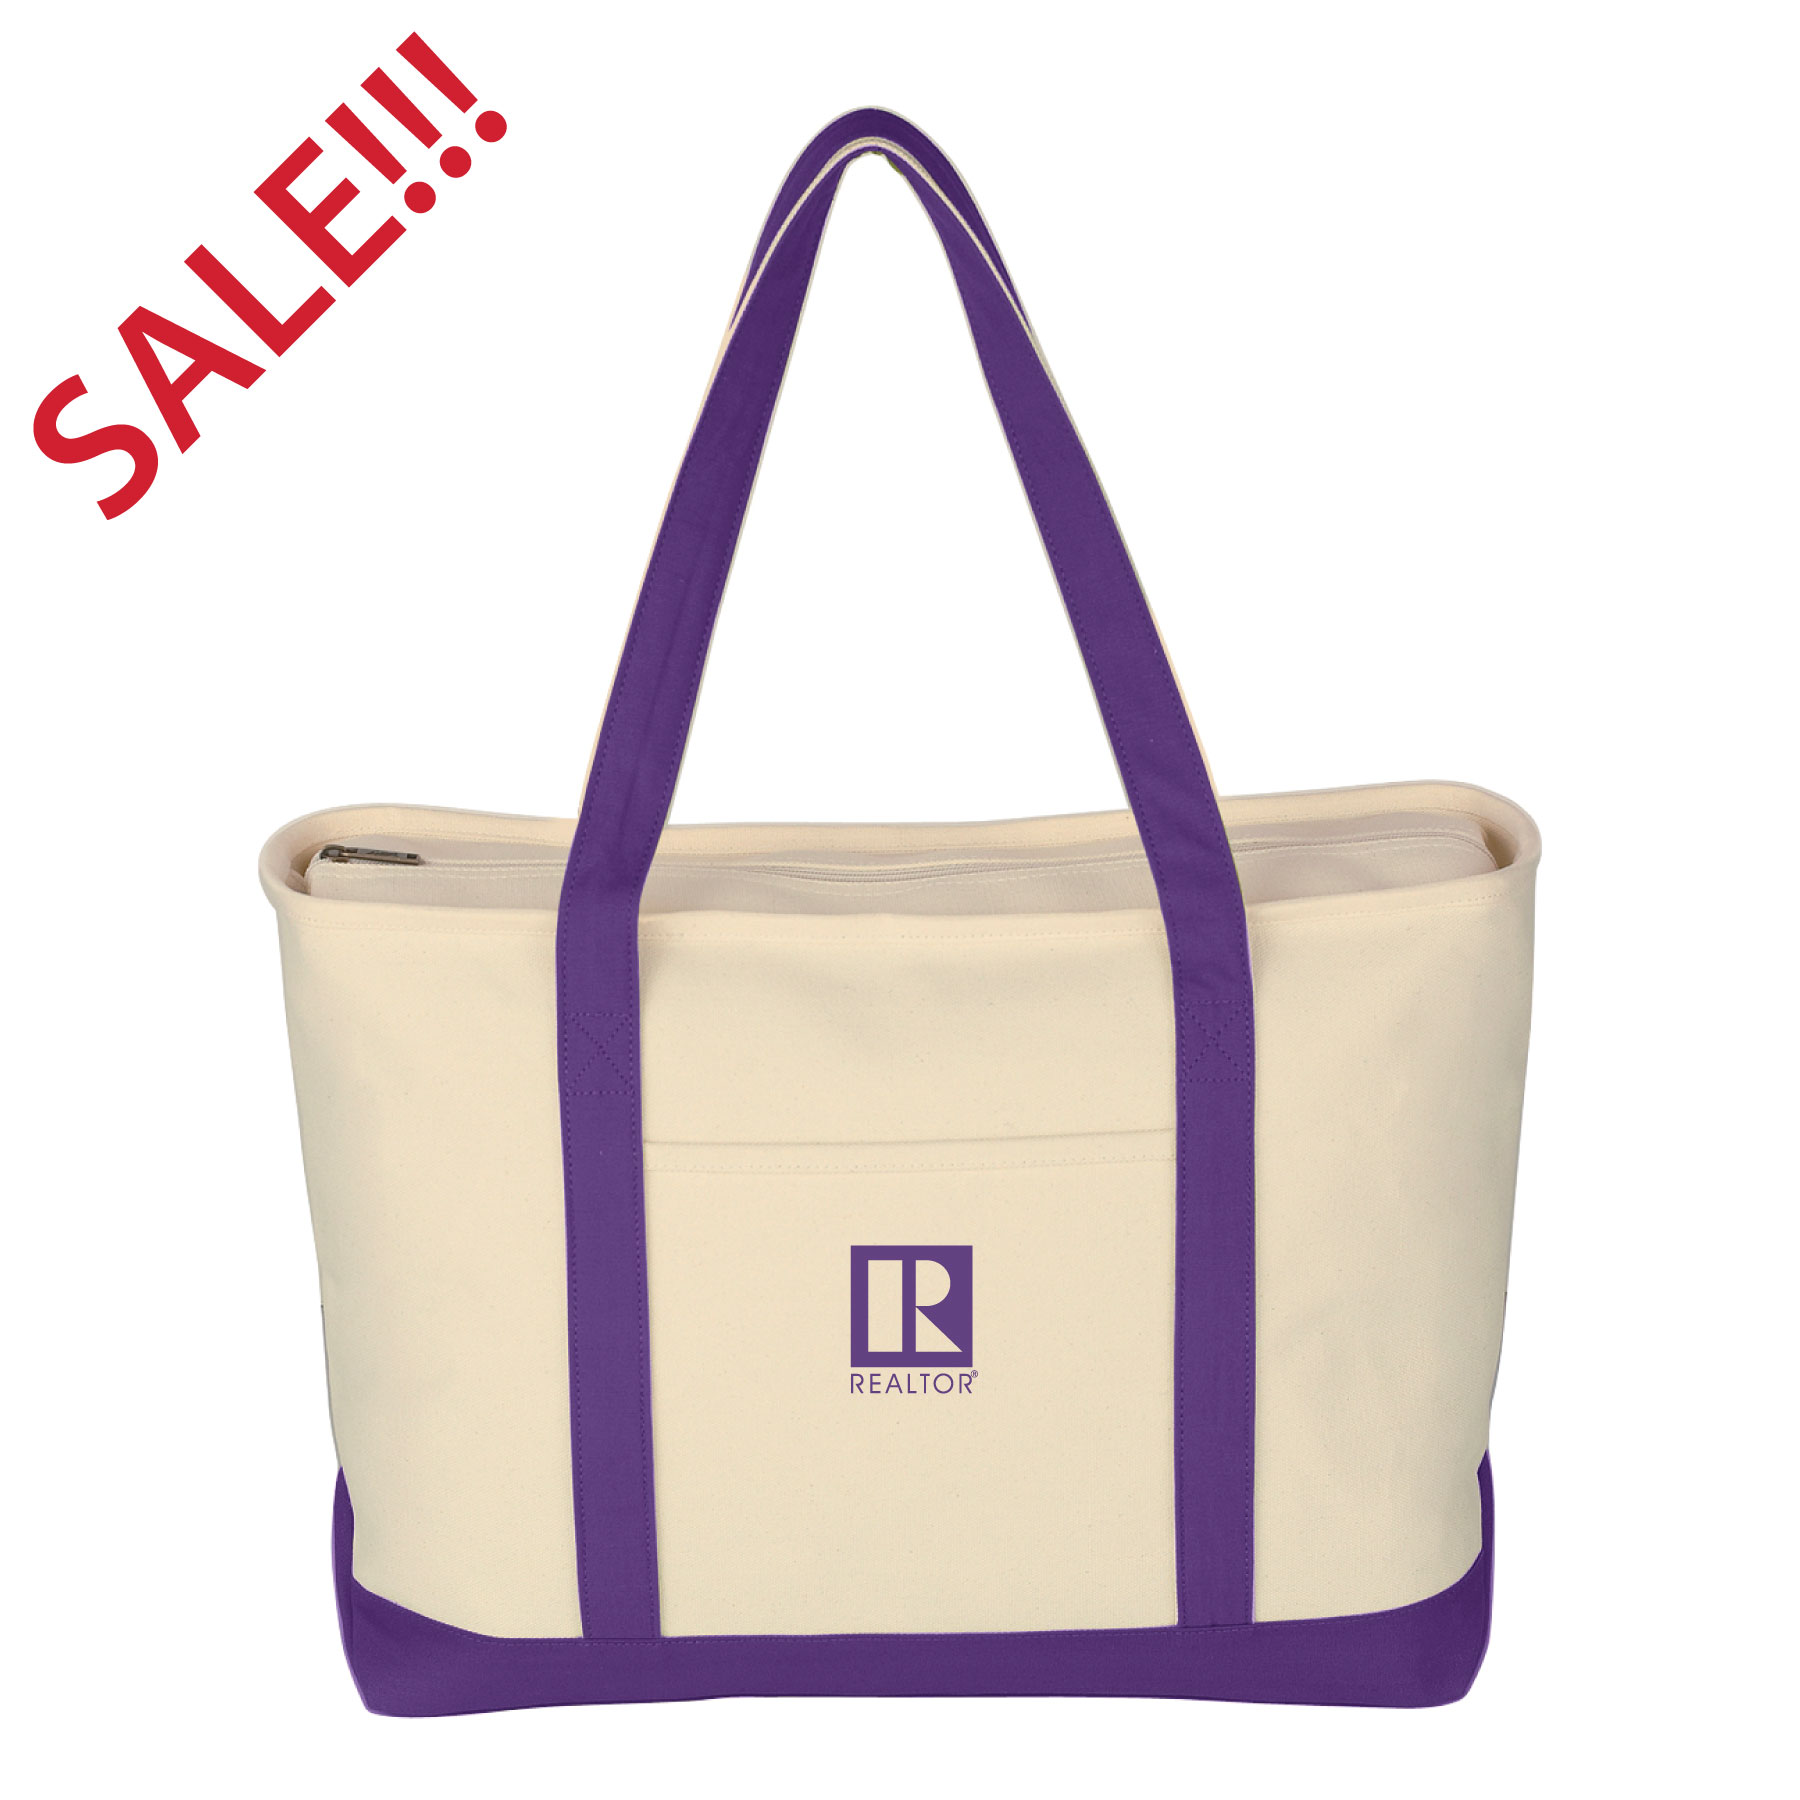 SALE - Heavy Duty XL Zippered Boat Tote TwwrSteps,Tote, Convention, Beach, Boat, Picnic, Carry, Bag, Gift, Bling, Large, XL, President. Association, Board